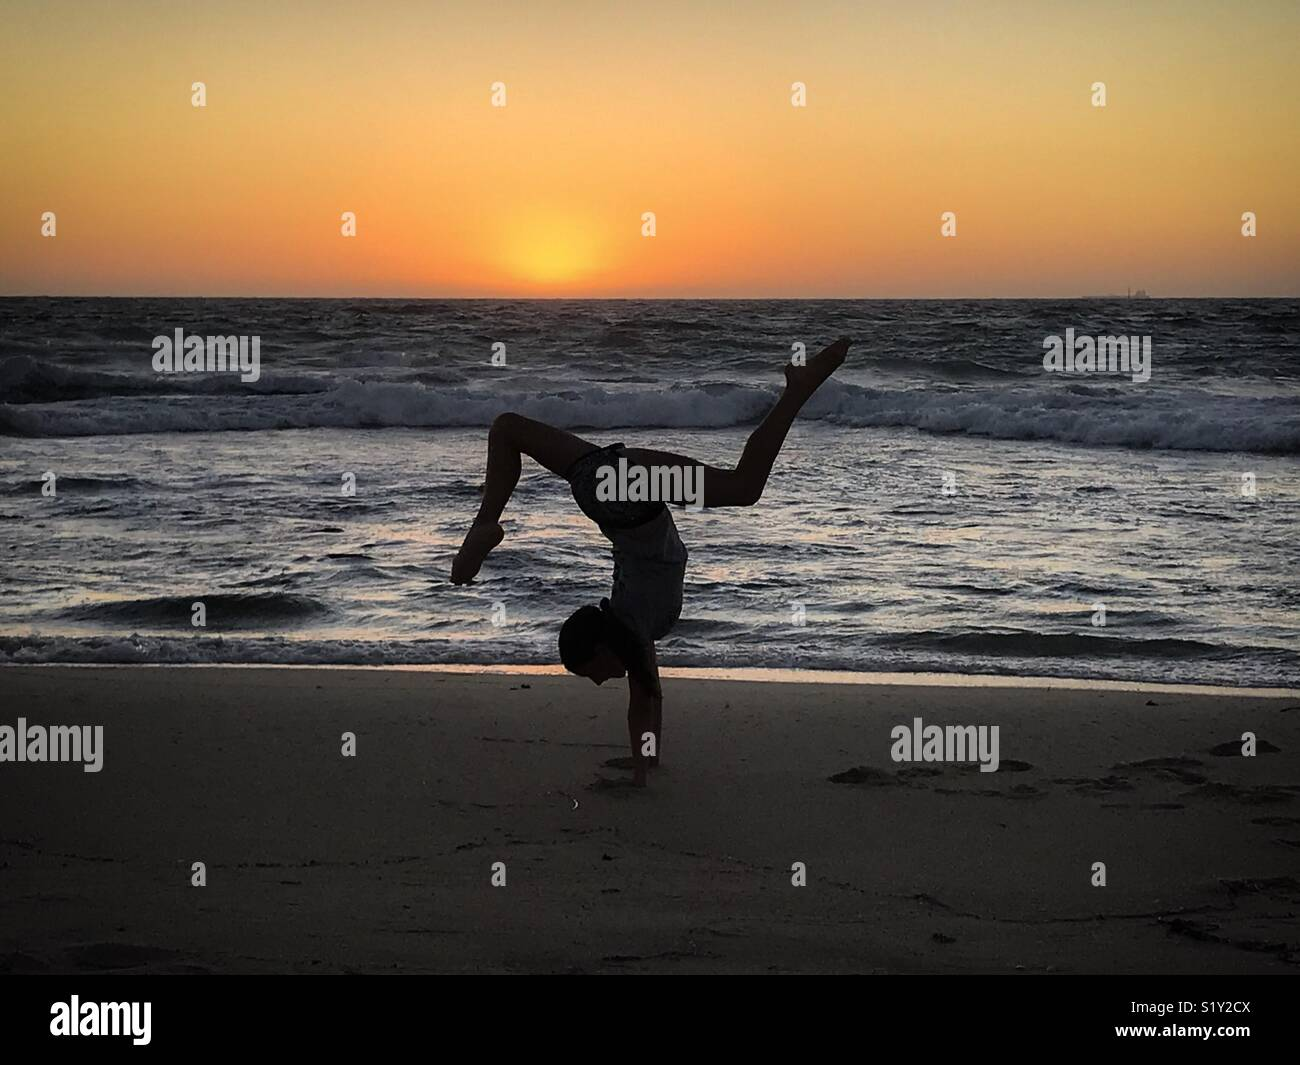 Girl doing handstand during beach sunset - Stock Image